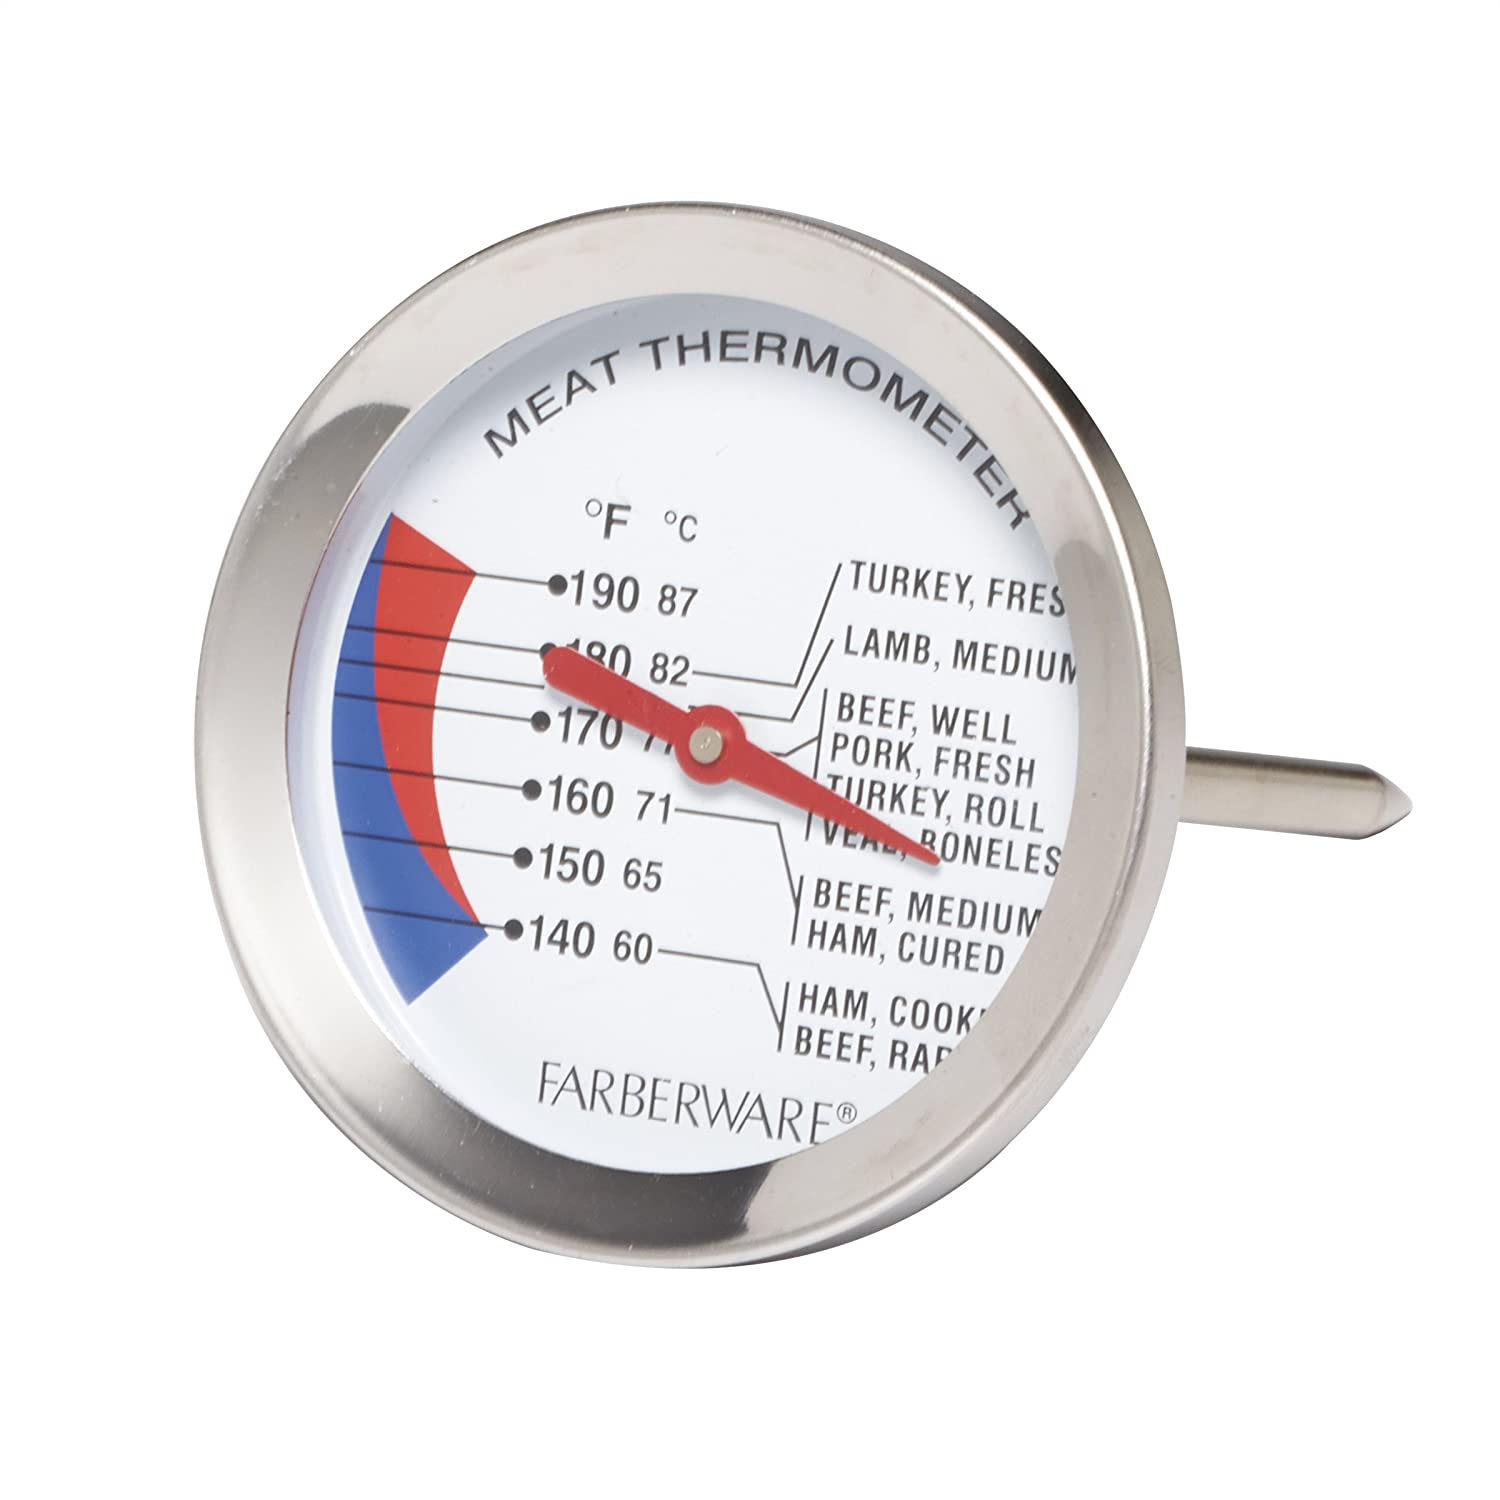 Farberware Protek Large Meat Thermometer, Stainless Steel